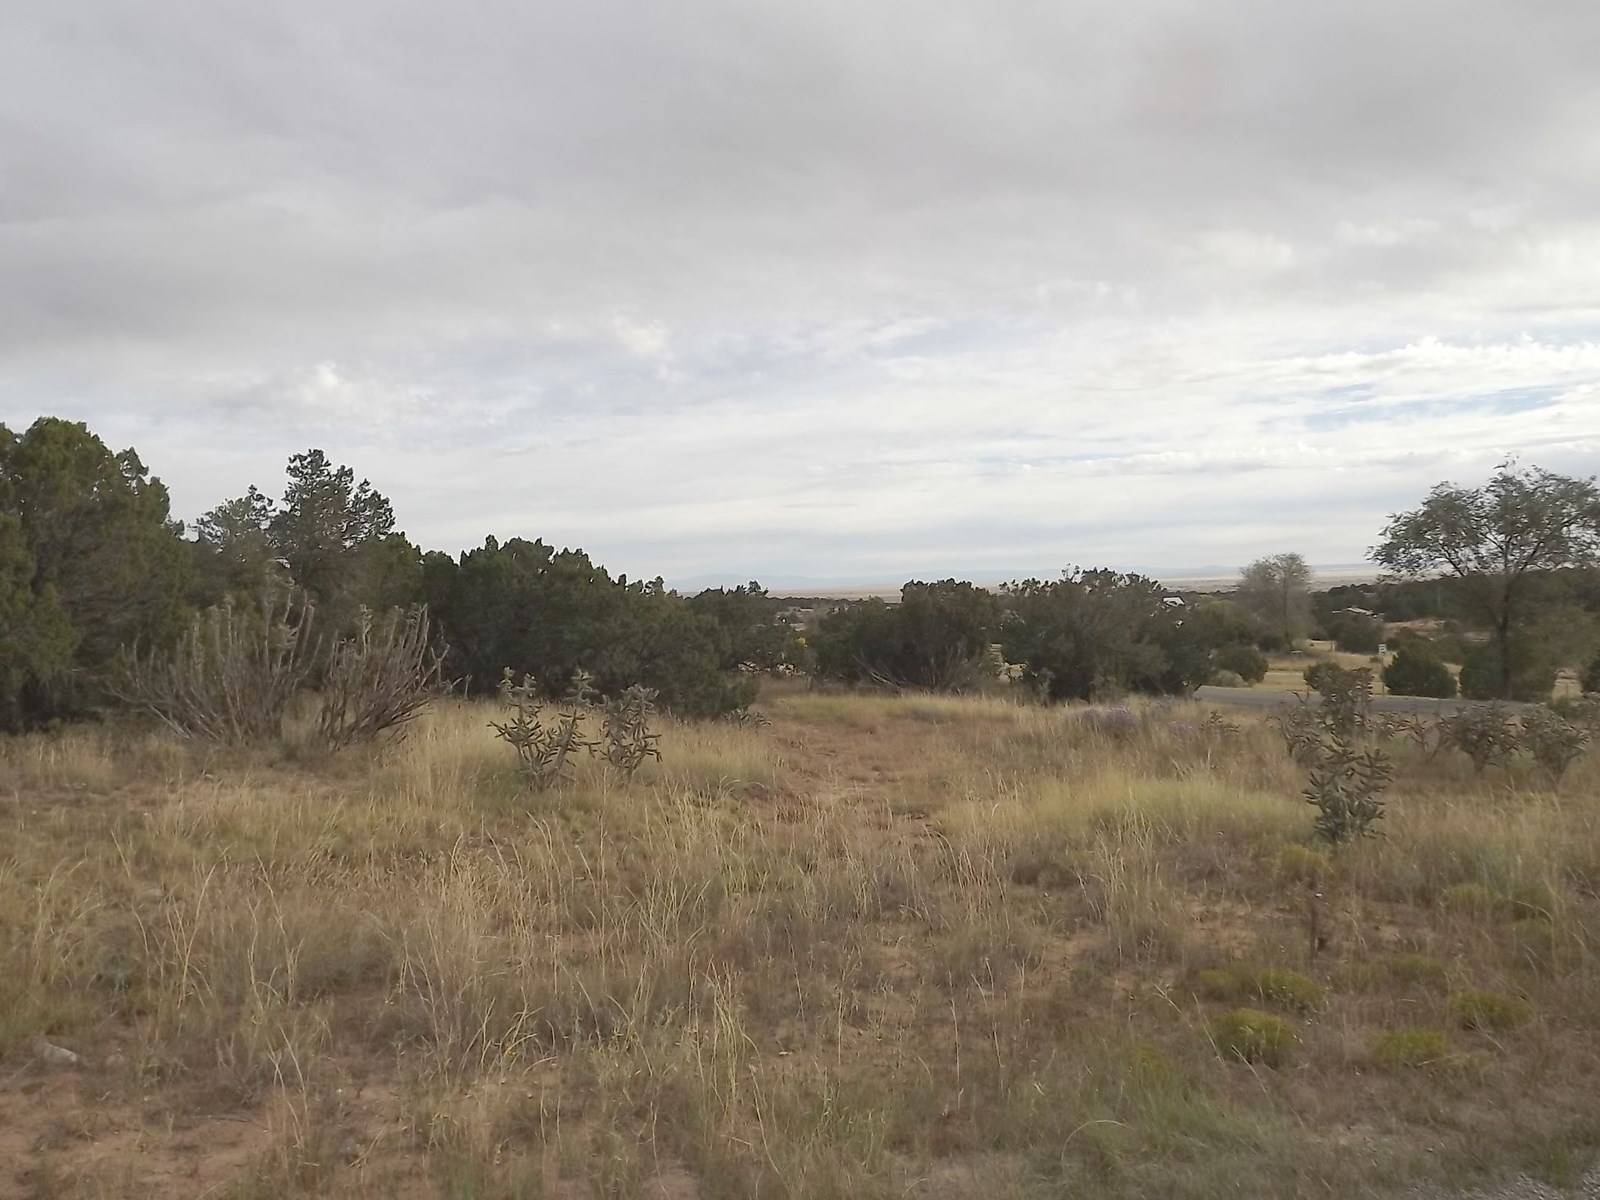 Edgewood NM Residential Building Lot For Sale